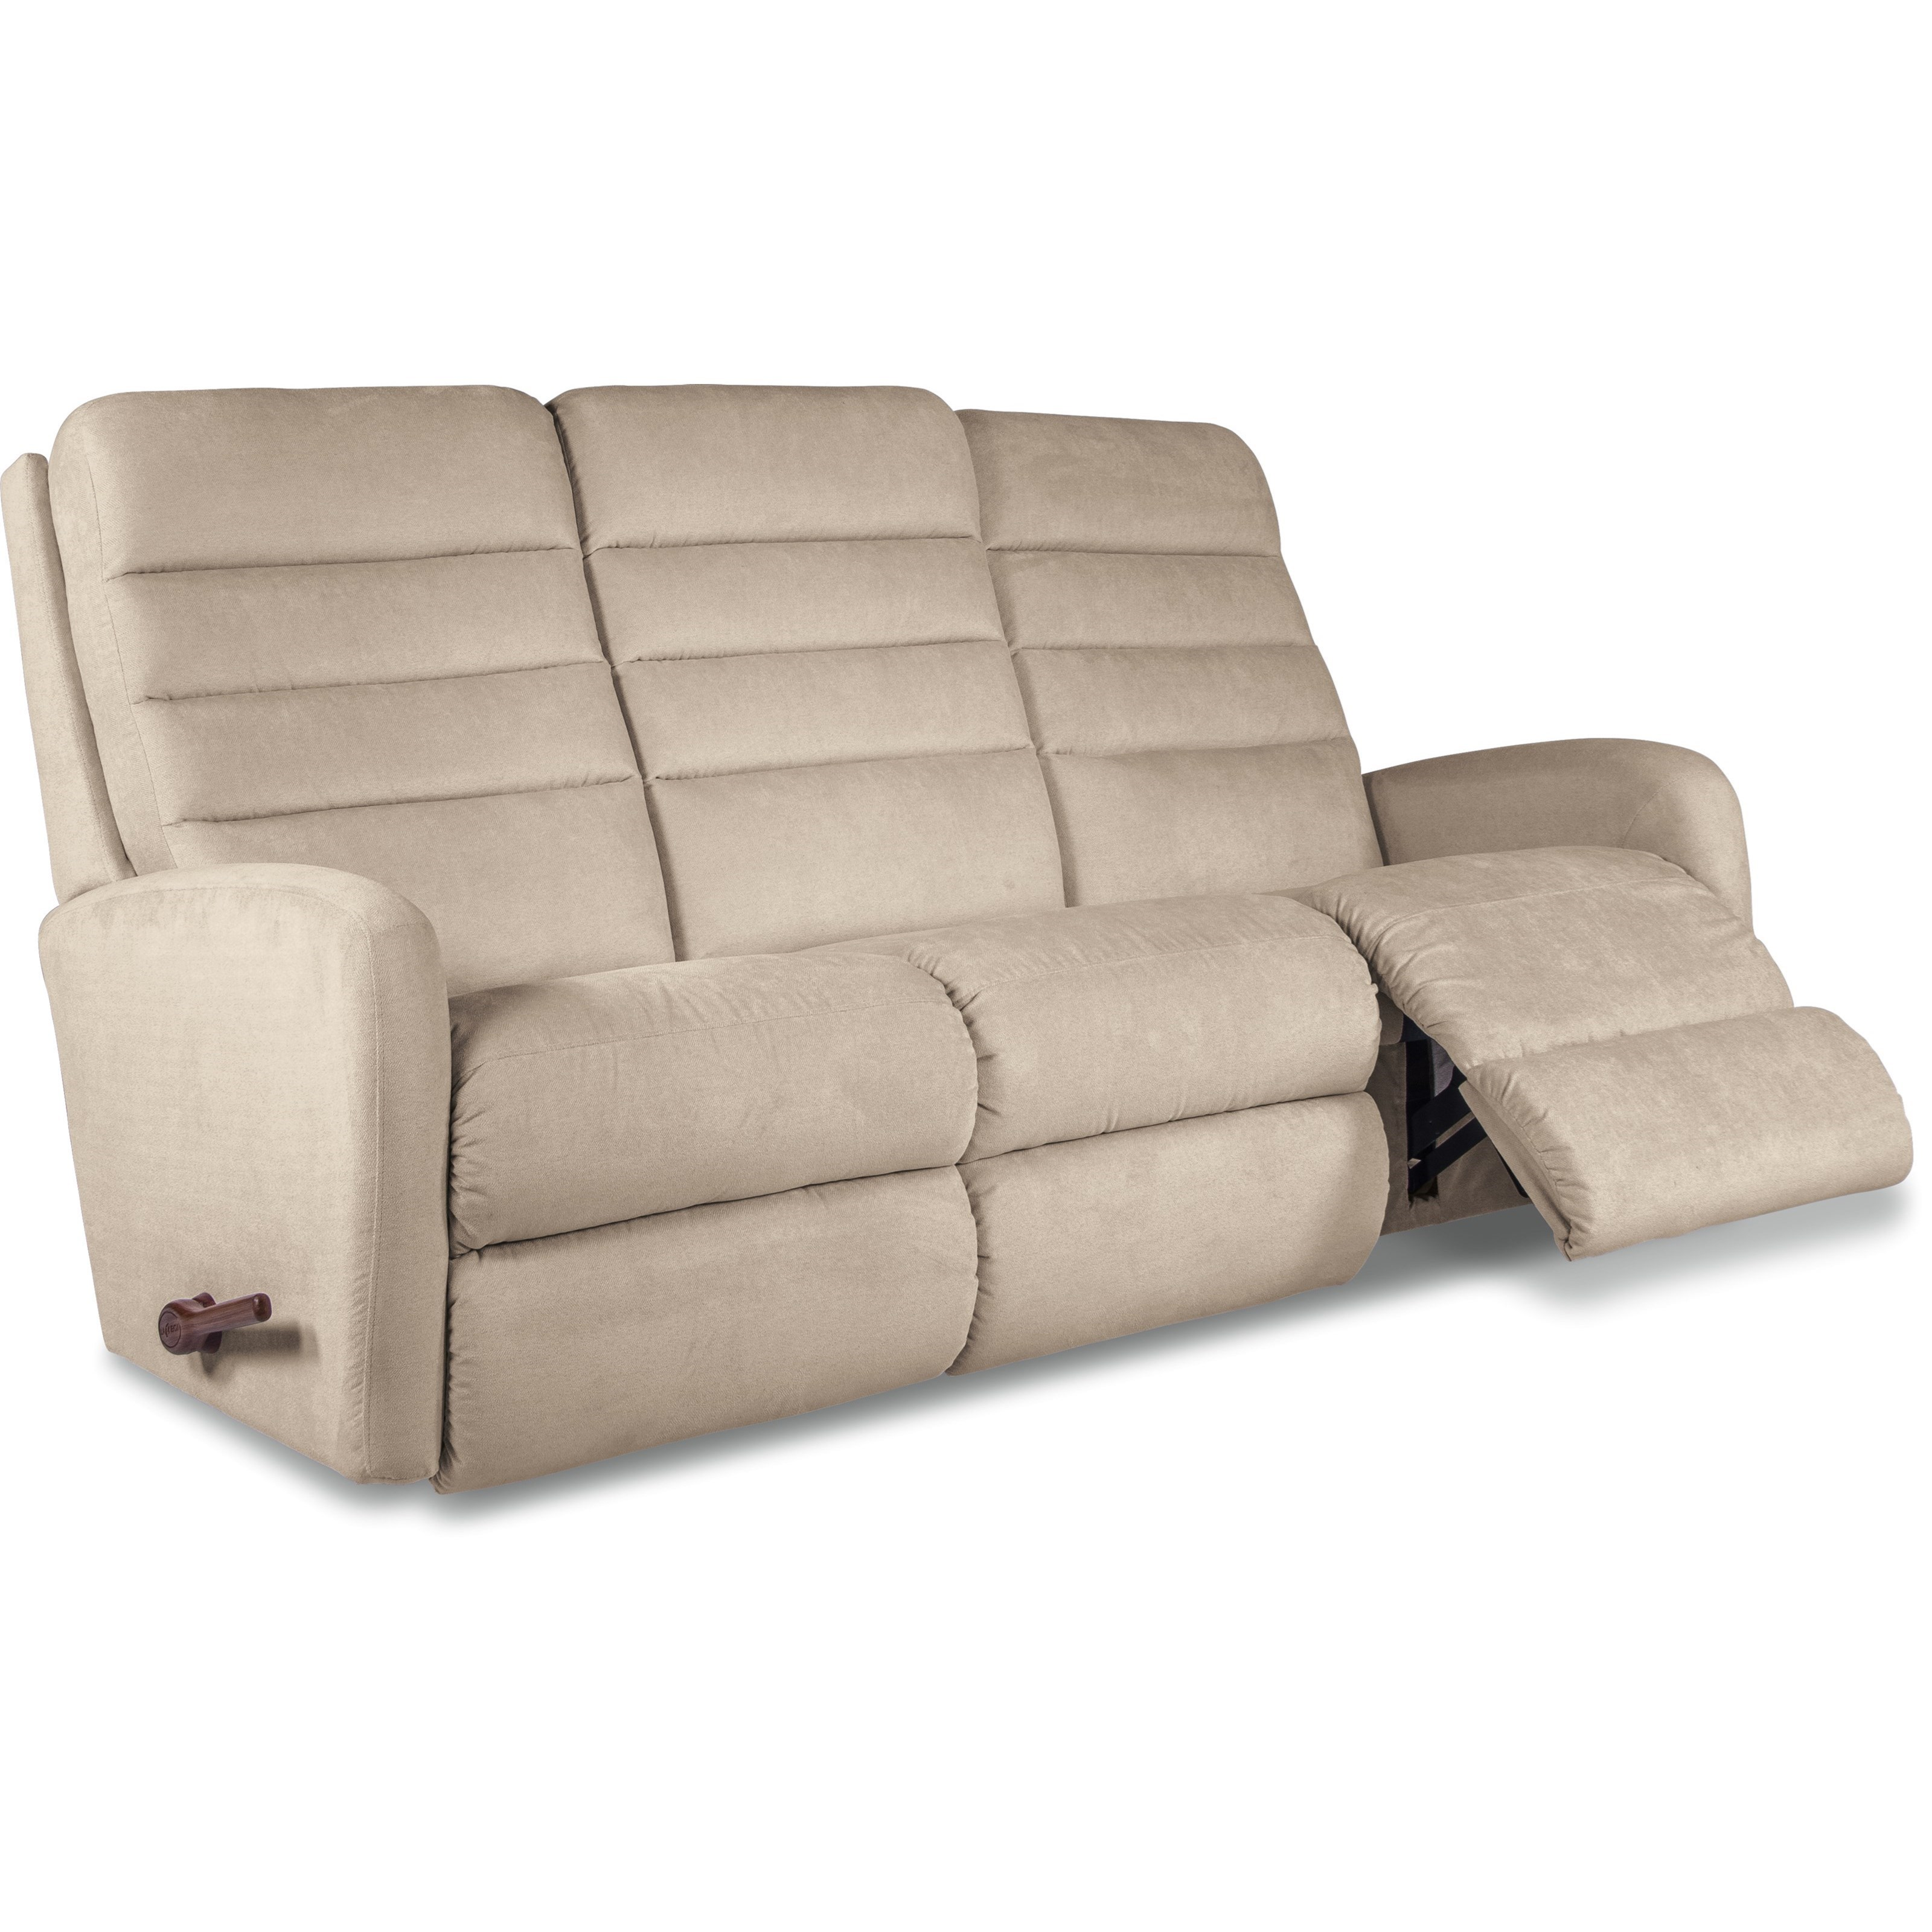 La-Z-Boy Forum 330744 Contemporary Reclining Sofa  sc 1 st  Great American Home Store : contemporary reclining sofas - islam-shia.org